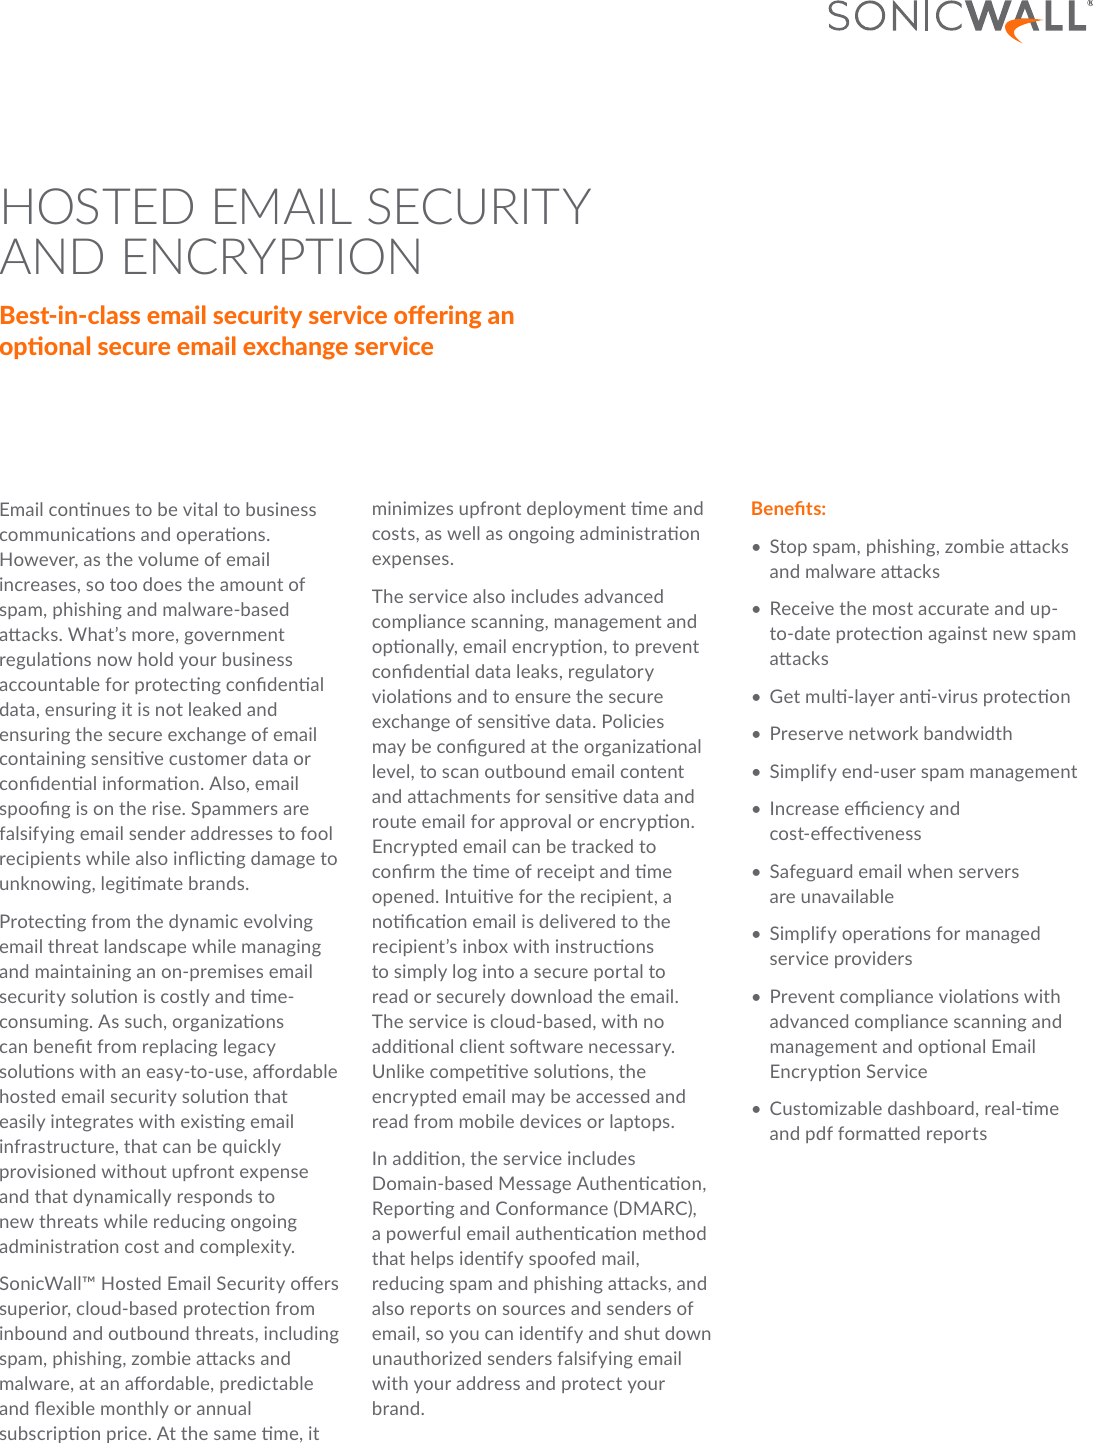 Sonicwall hosted email security and encryption datasheet 68217